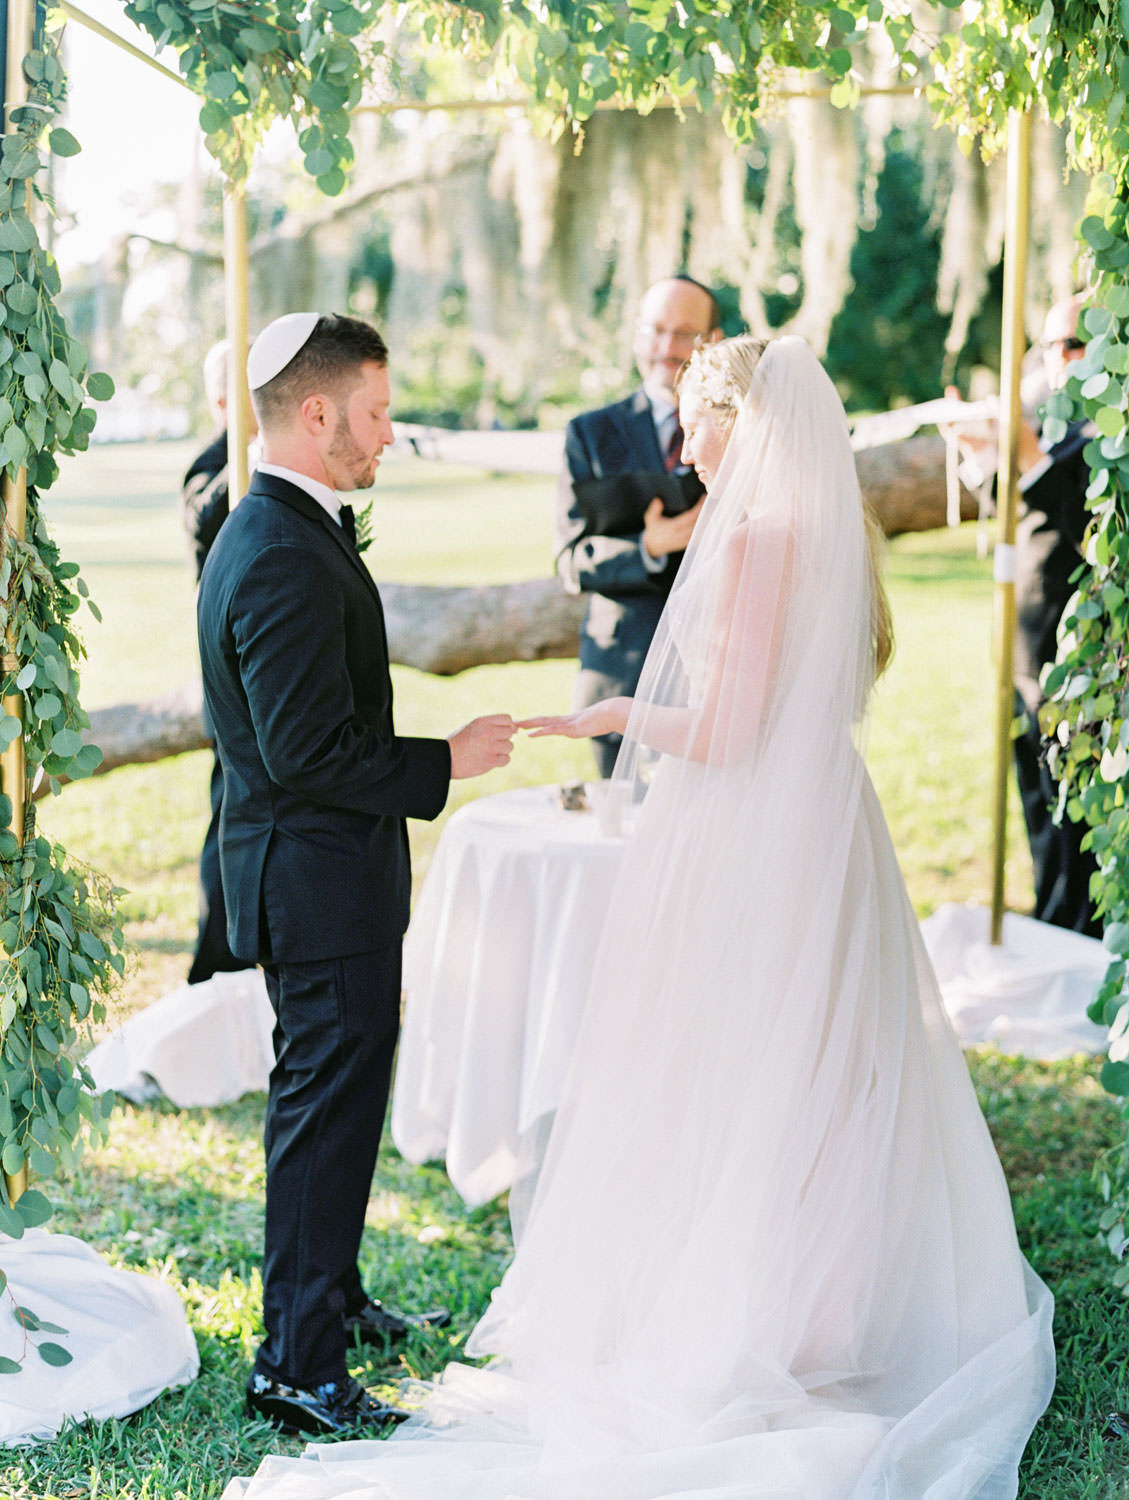 Micro wedding with 21 guests. Chuppah covered in silver dollar eucalyptus and white flowers under a tree covered in spanish moss. Film photography at Jekyll Island Club Resort Wedding by Cavin Elizabeth Photography